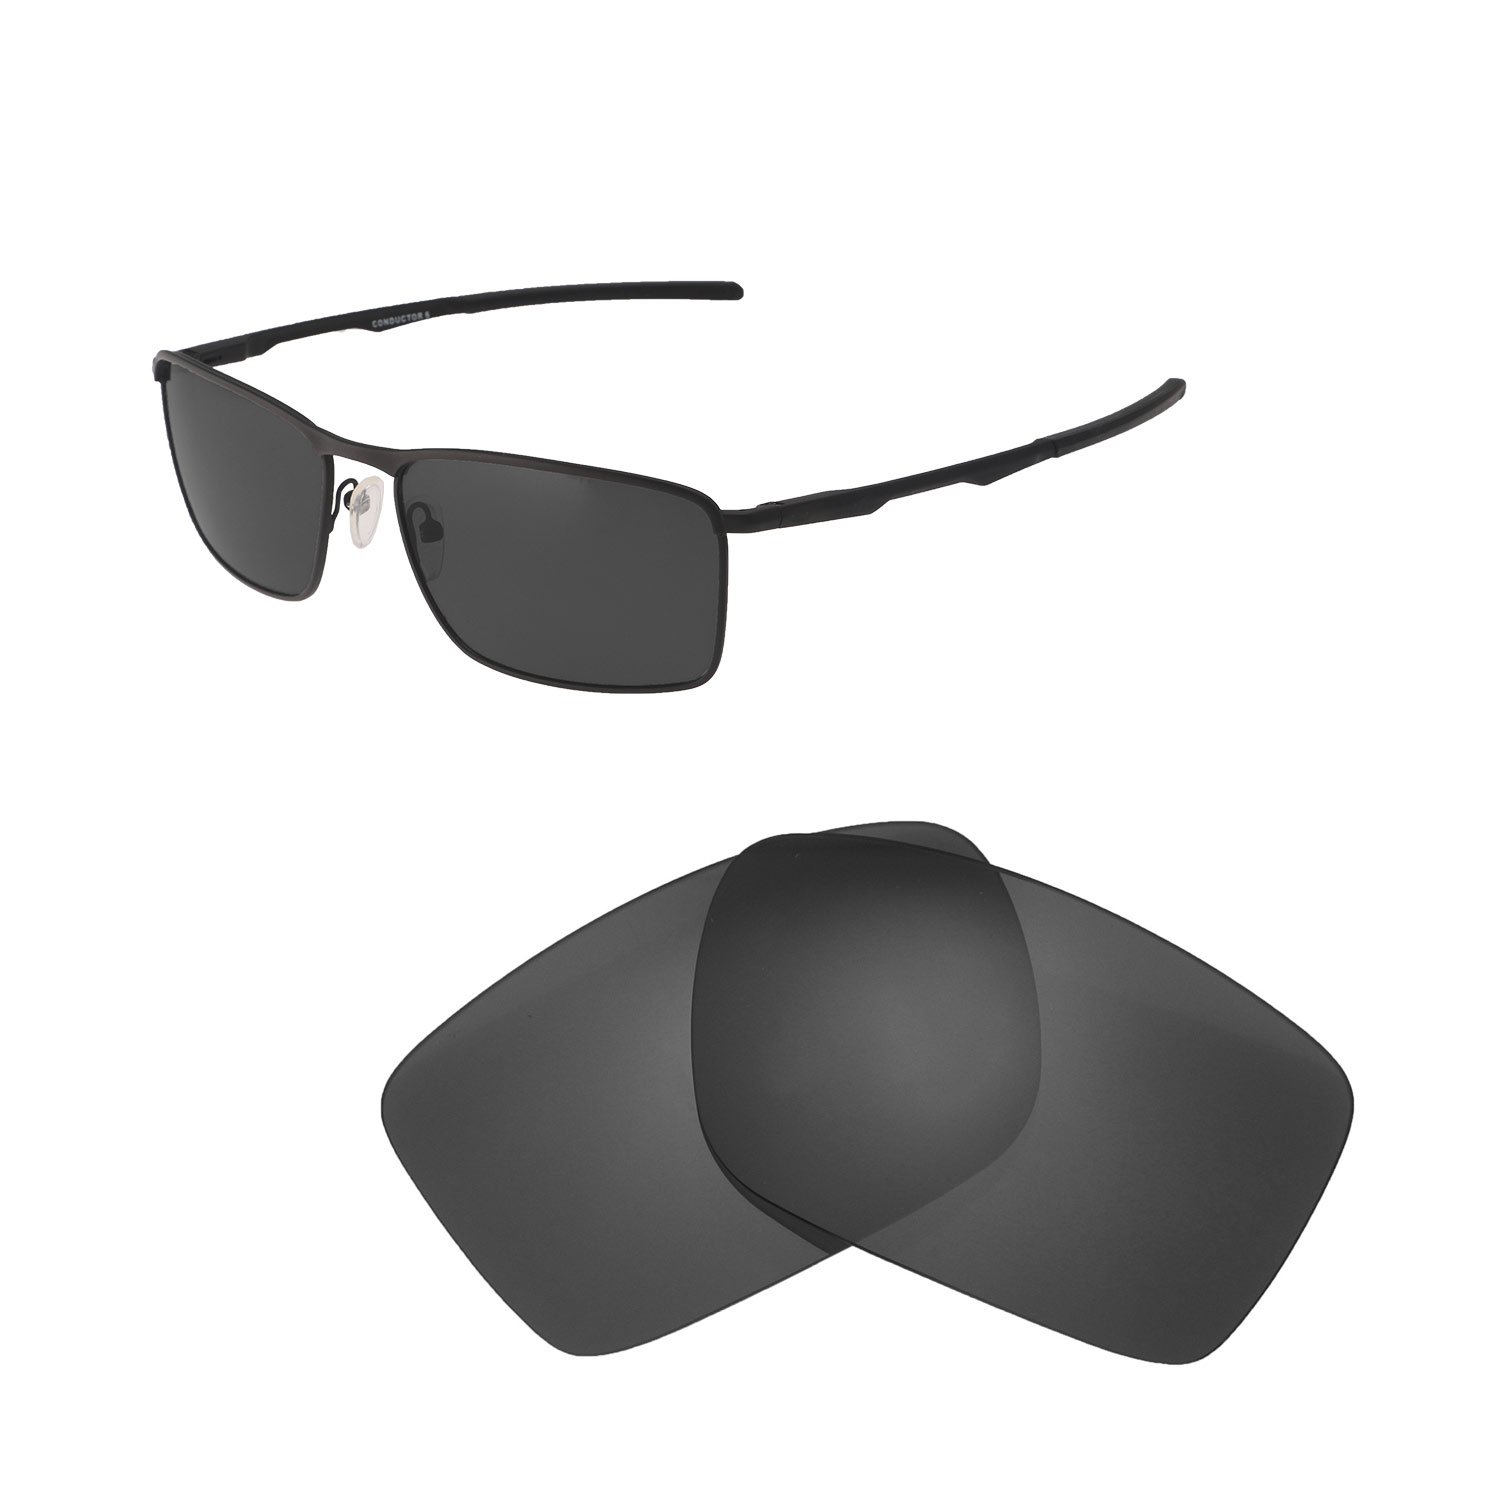 ede0cbd48c Dettagli su New Walleva Black Polarized Replacement Lenses For Oakley  Conductor 6 Sunglasses